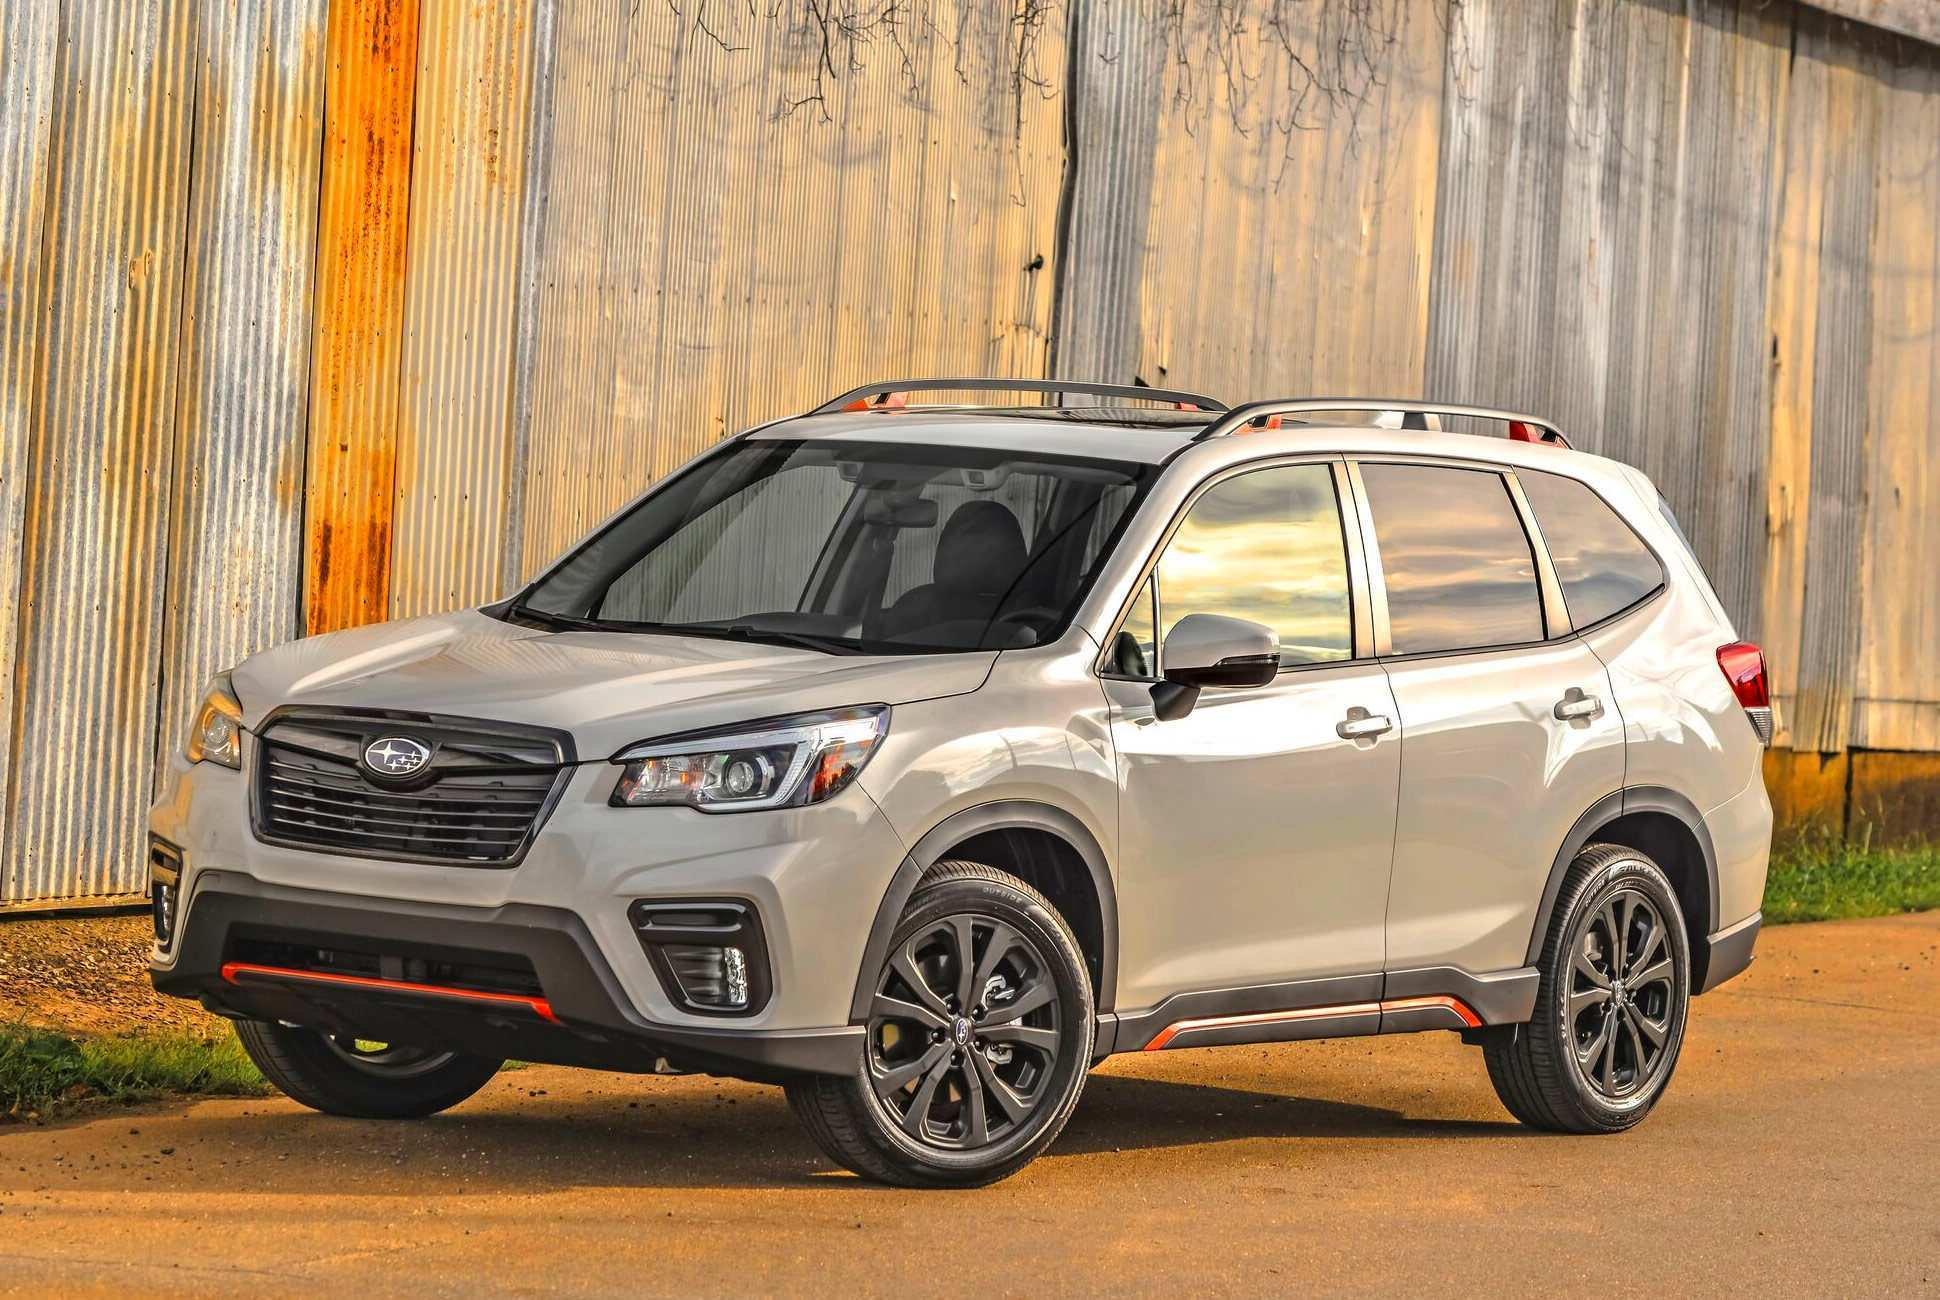 81 Gallery of 2019 Subaru Forester Mpg Review with 2019 Subaru Forester Mpg